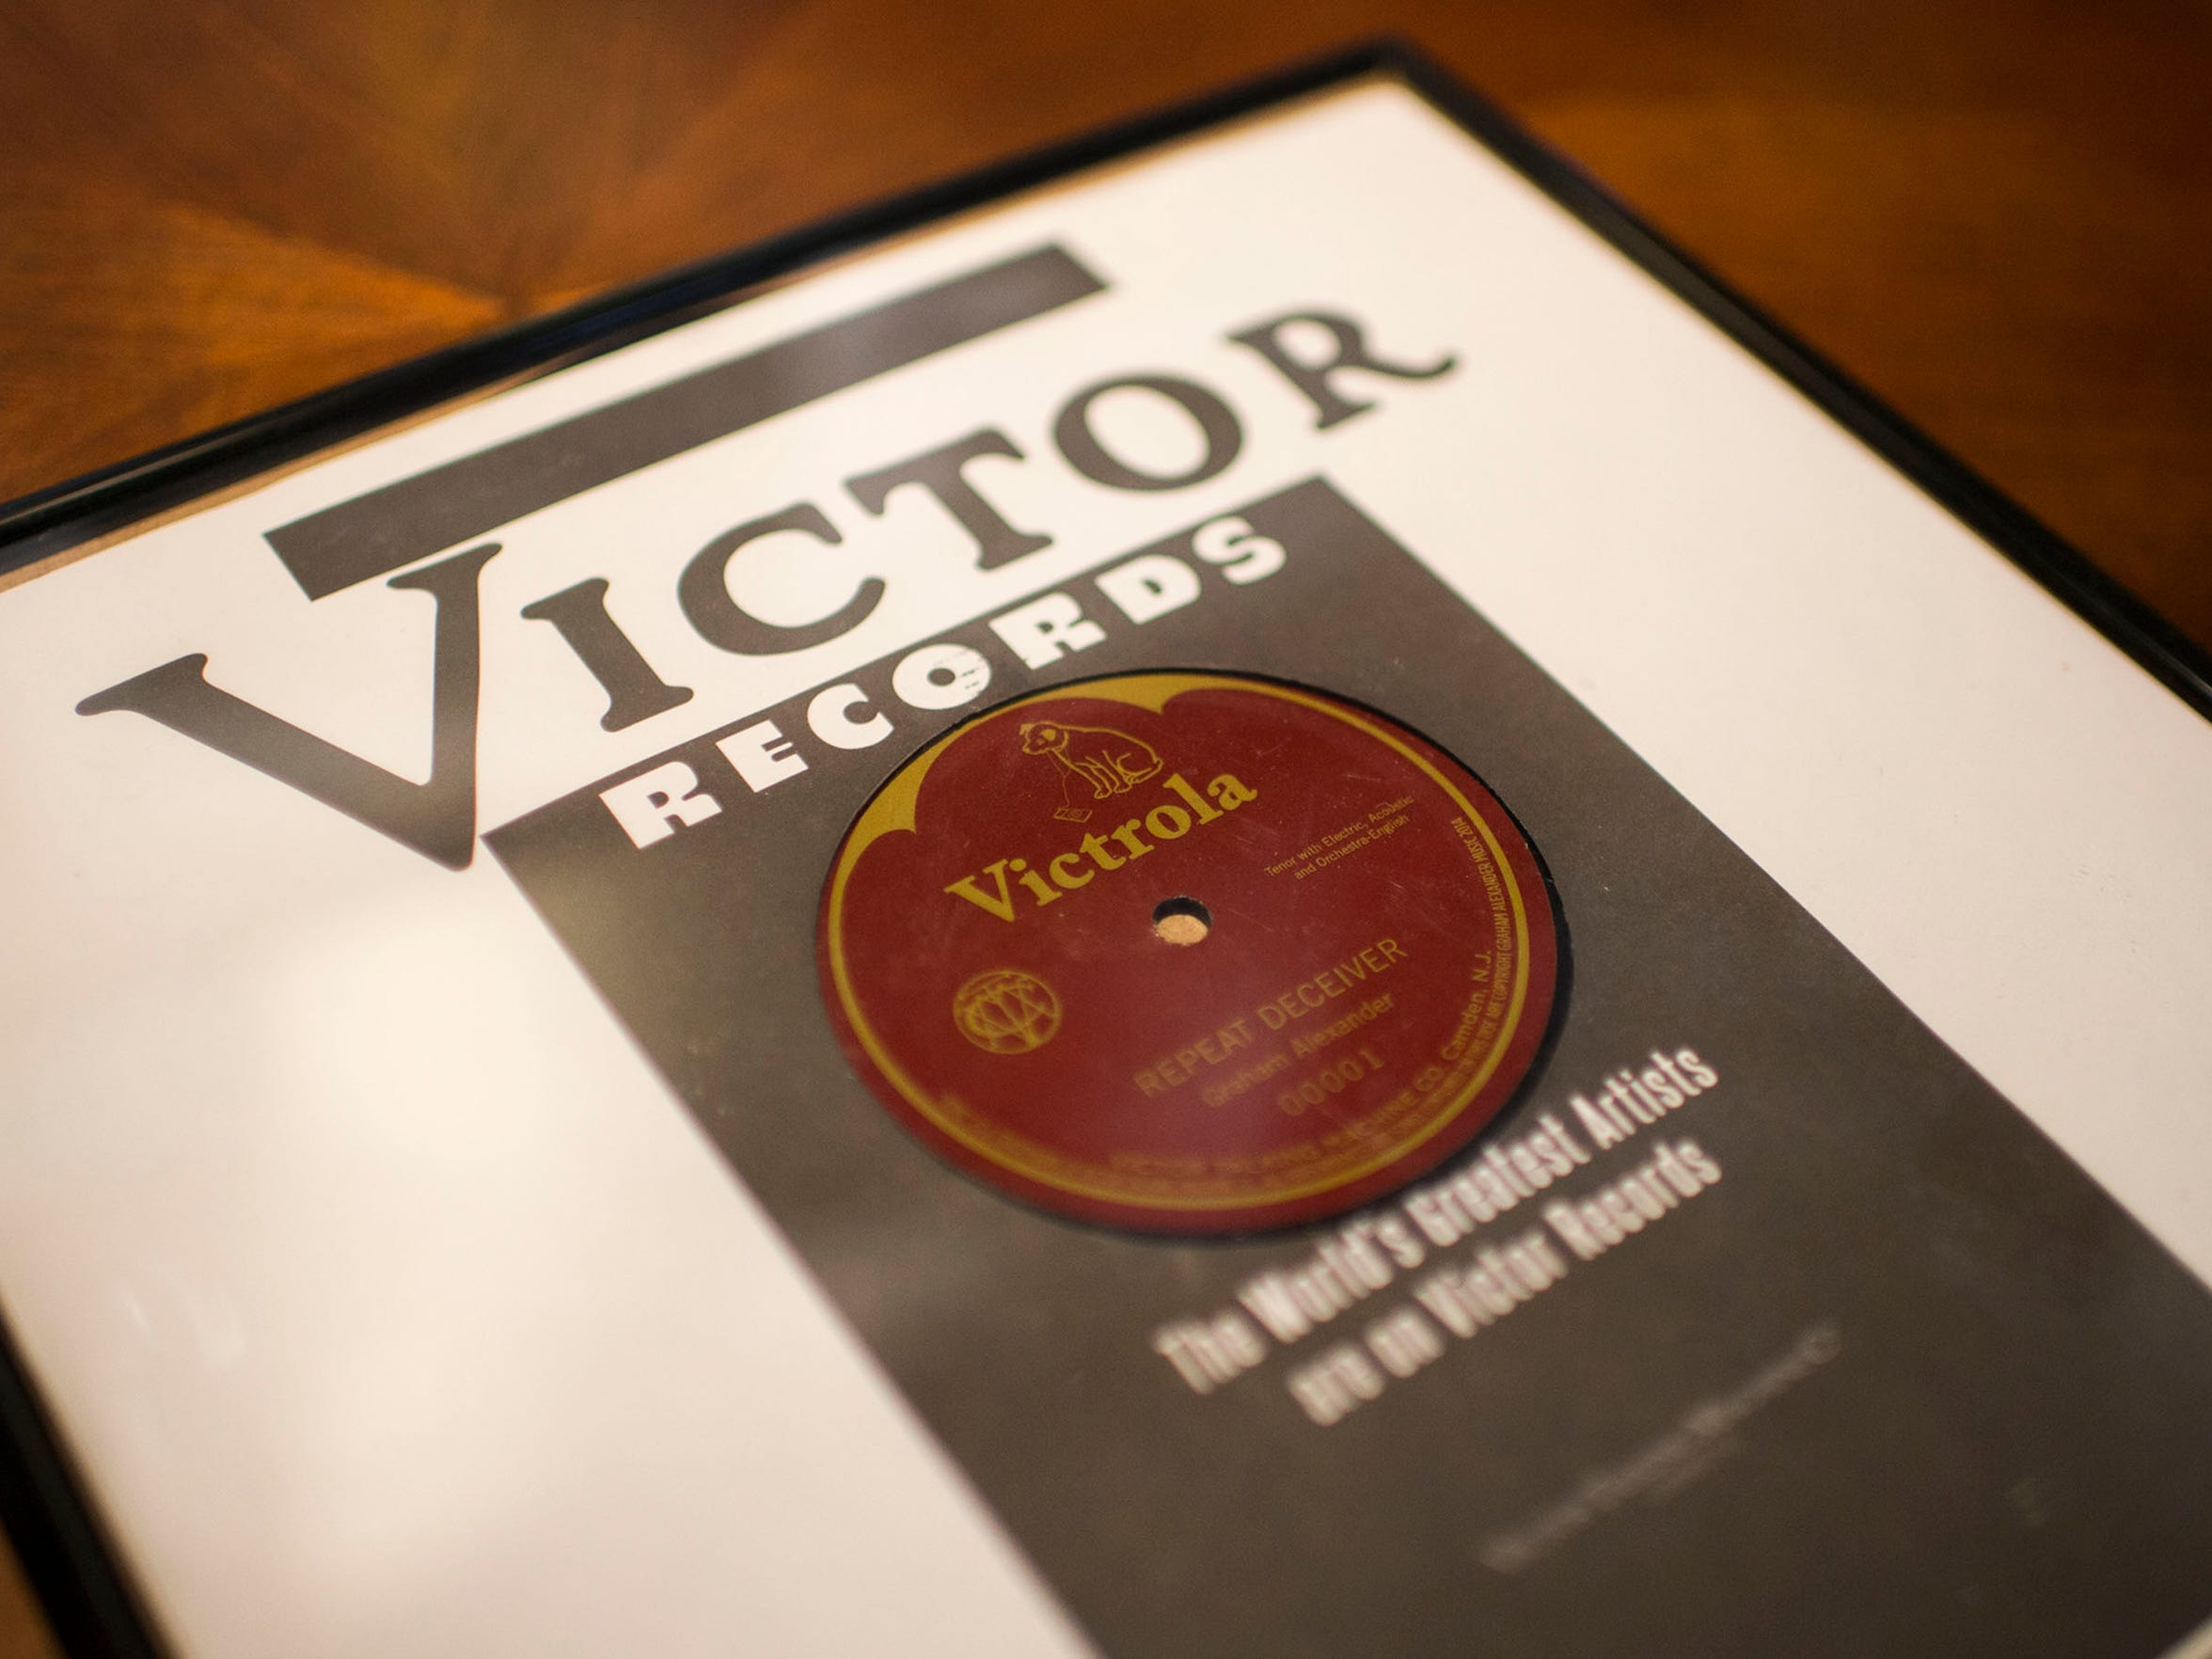 Victrola Records is releasing new music for the first time since 1945.